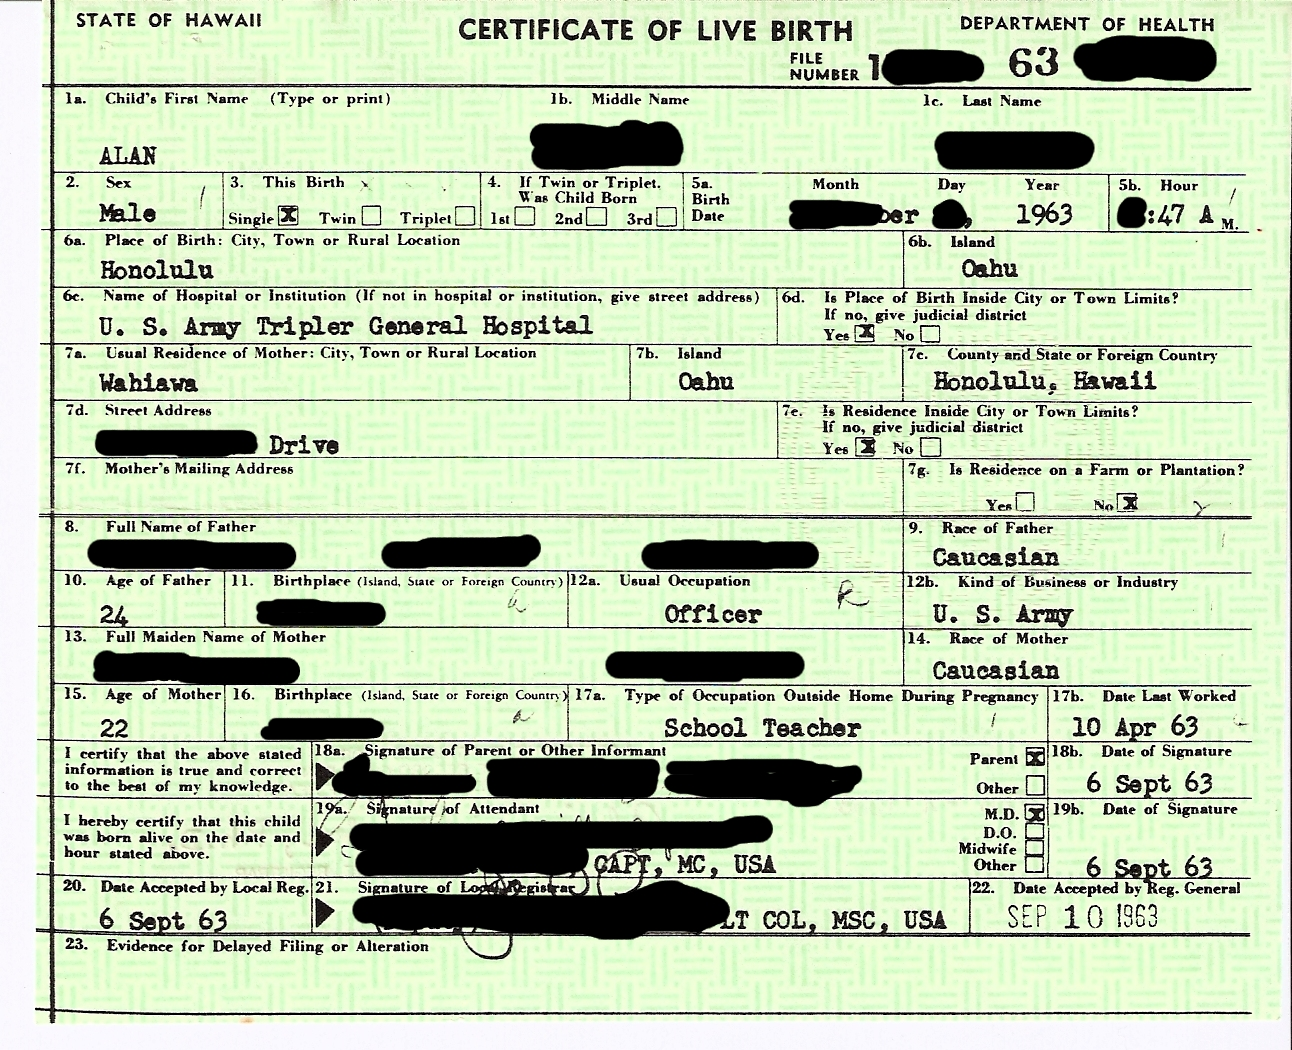 Obama was not born in a honolulu hospital gina cobb the wording is evident aiddatafo Gallery